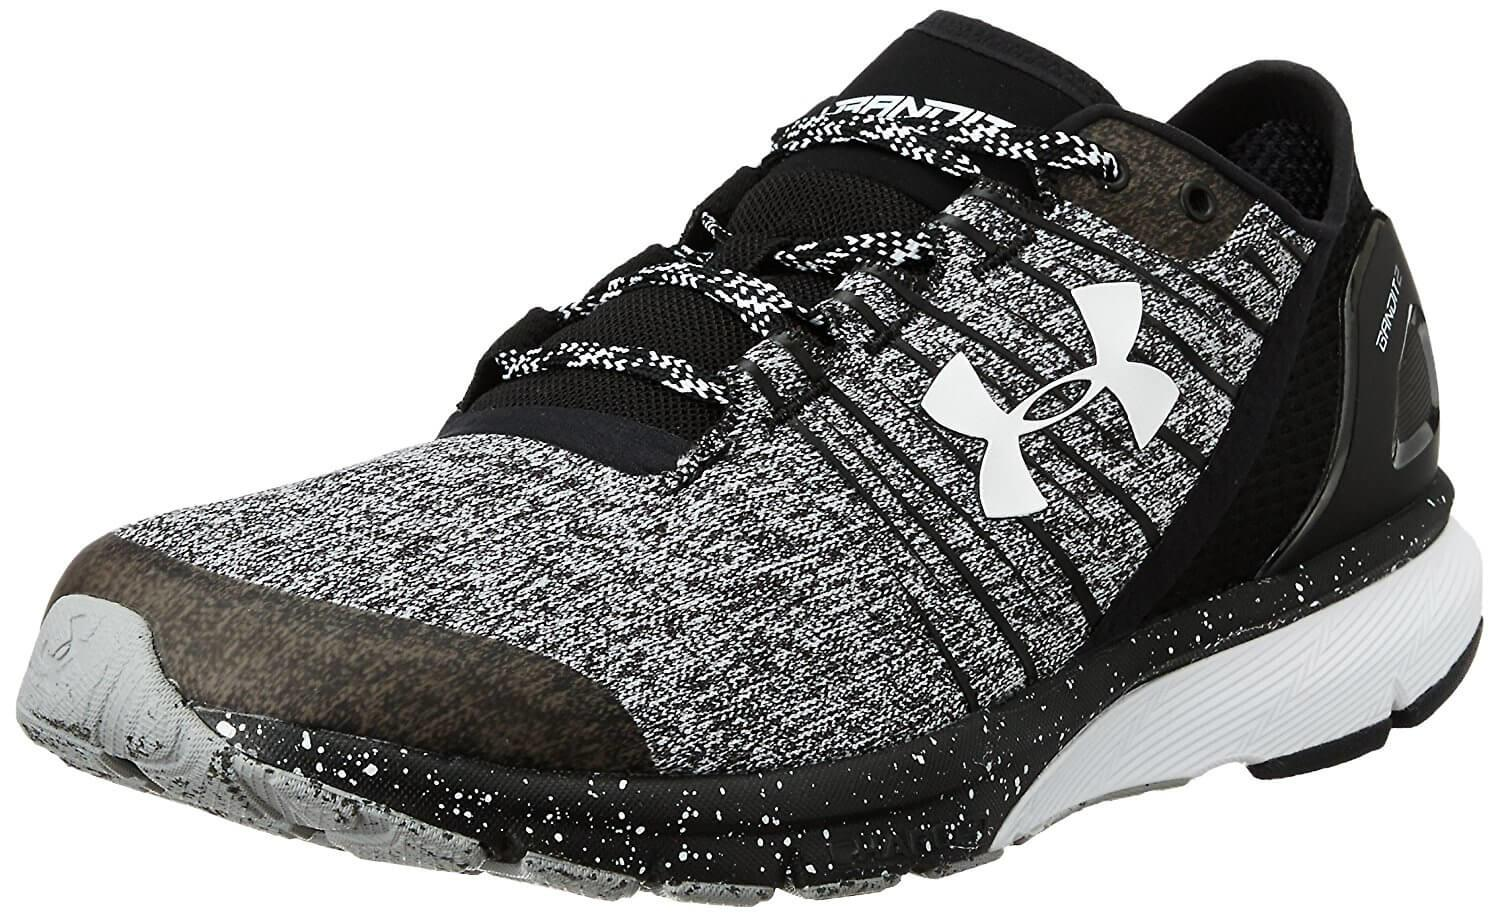 Resplandor Privilegio Noche  Under Armour Charged Bandit 2 Fully Reviewed | RunnerClick